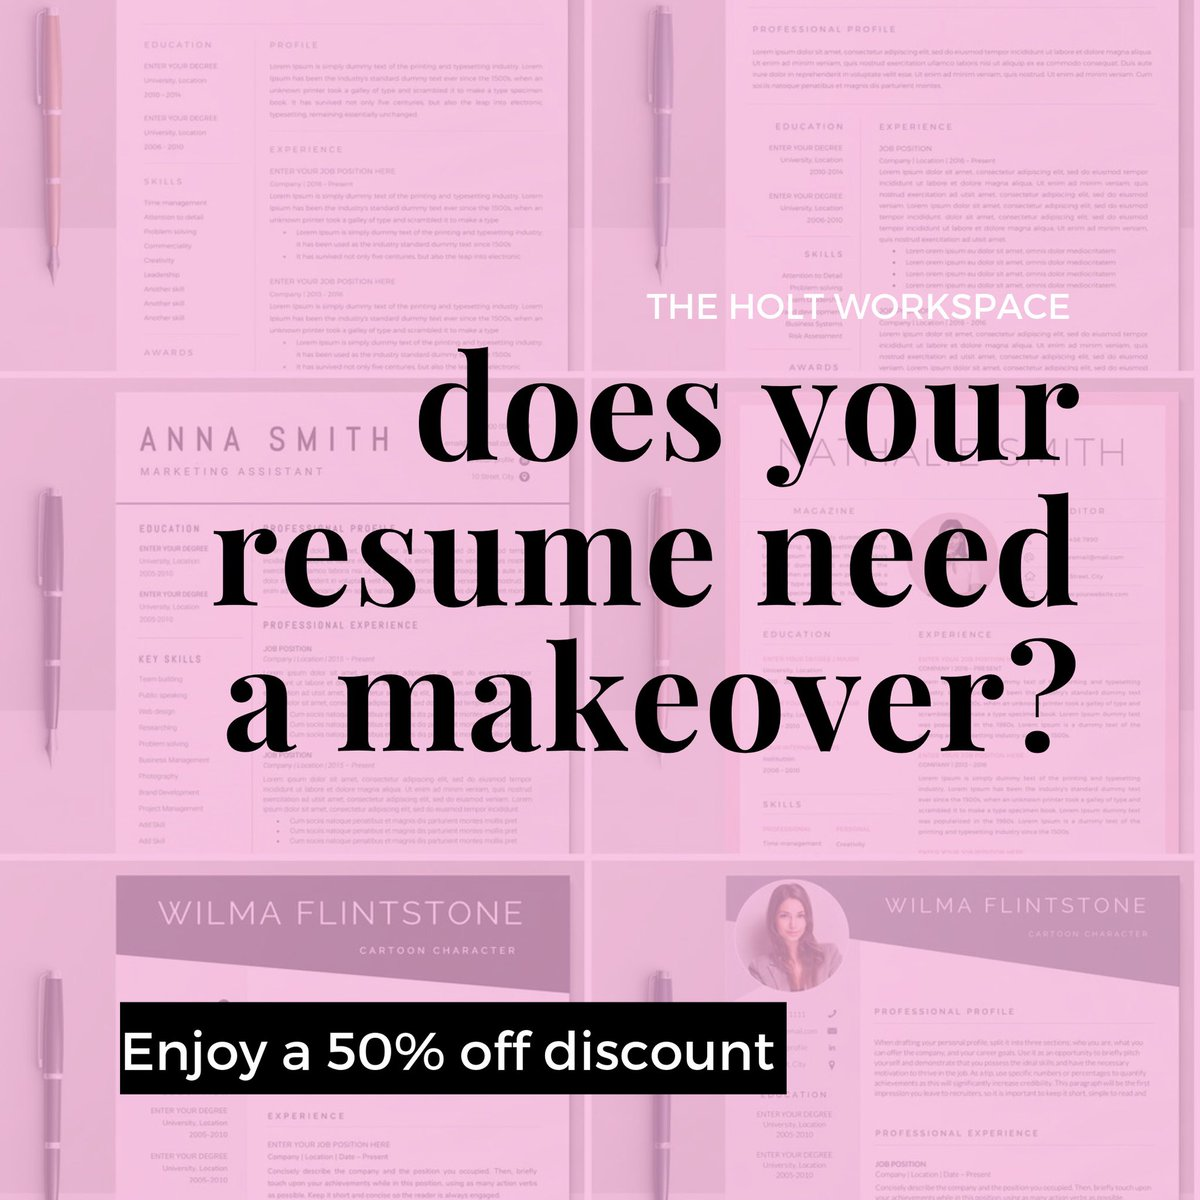 Could your resume and cover letter use a makeover? We got you! DM for a *FREE* consult today! http://bit.ly/2EvQgbI   Also, enjoy a 50% off discount!   #careeradvice #professionalwomen #resumewriter #coverletterwriter #careeropportunities #jobhelp #business #corporatelife #jobs